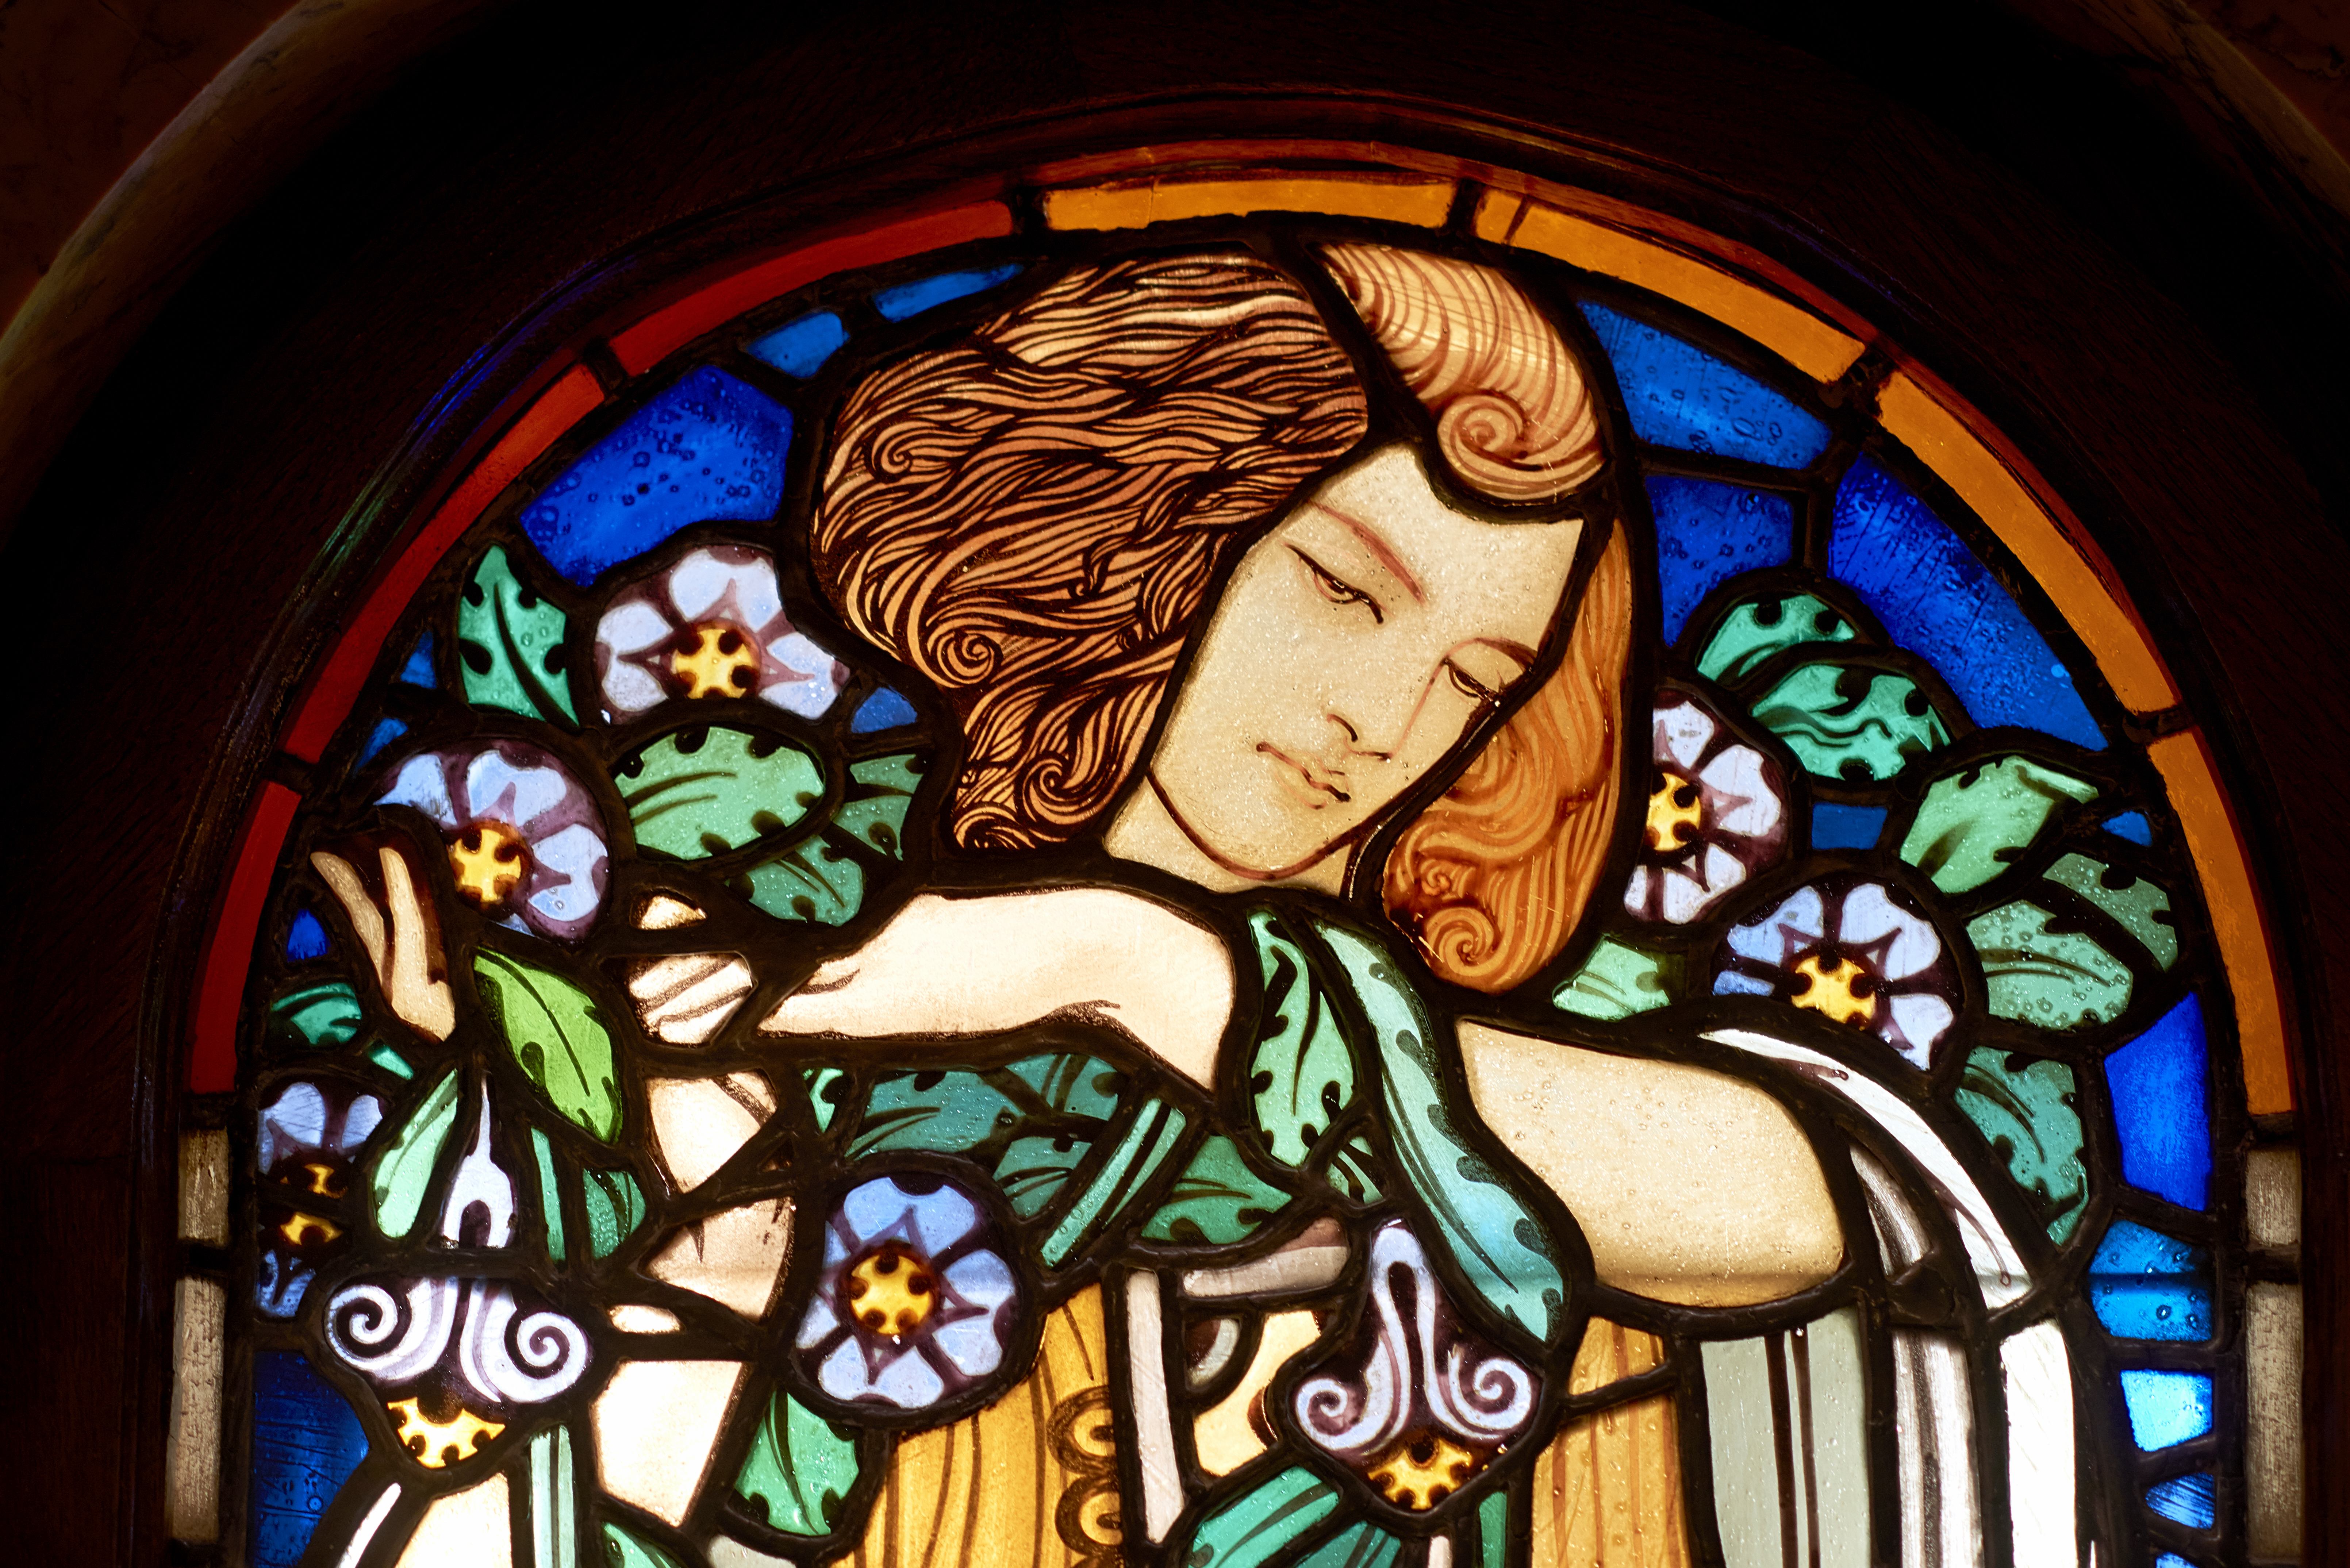 8._stained_glass_art_deco_window_detail_by_glass_artist_miksa_roth_2_vaci1_budapest_hungary